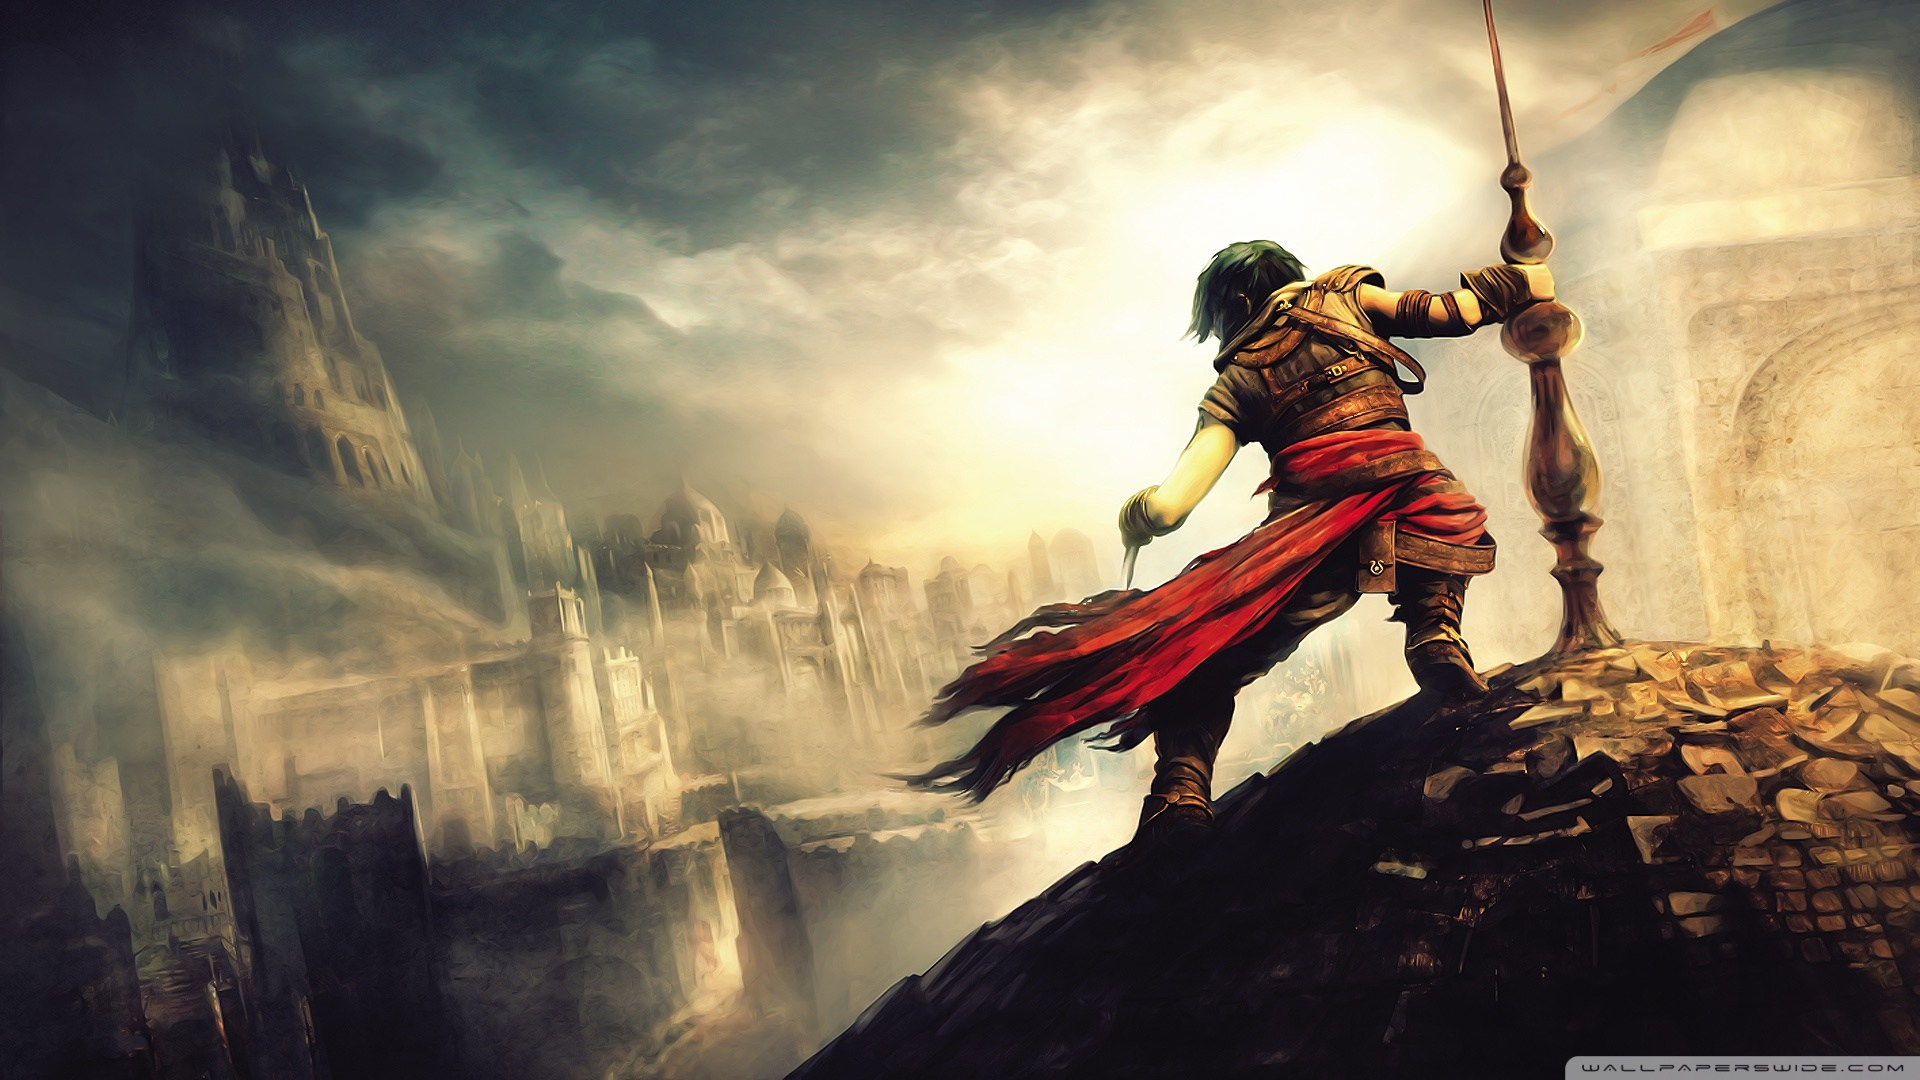 prince_of_persia_the_forgotten_sands_4-wallpaper-1920x1080